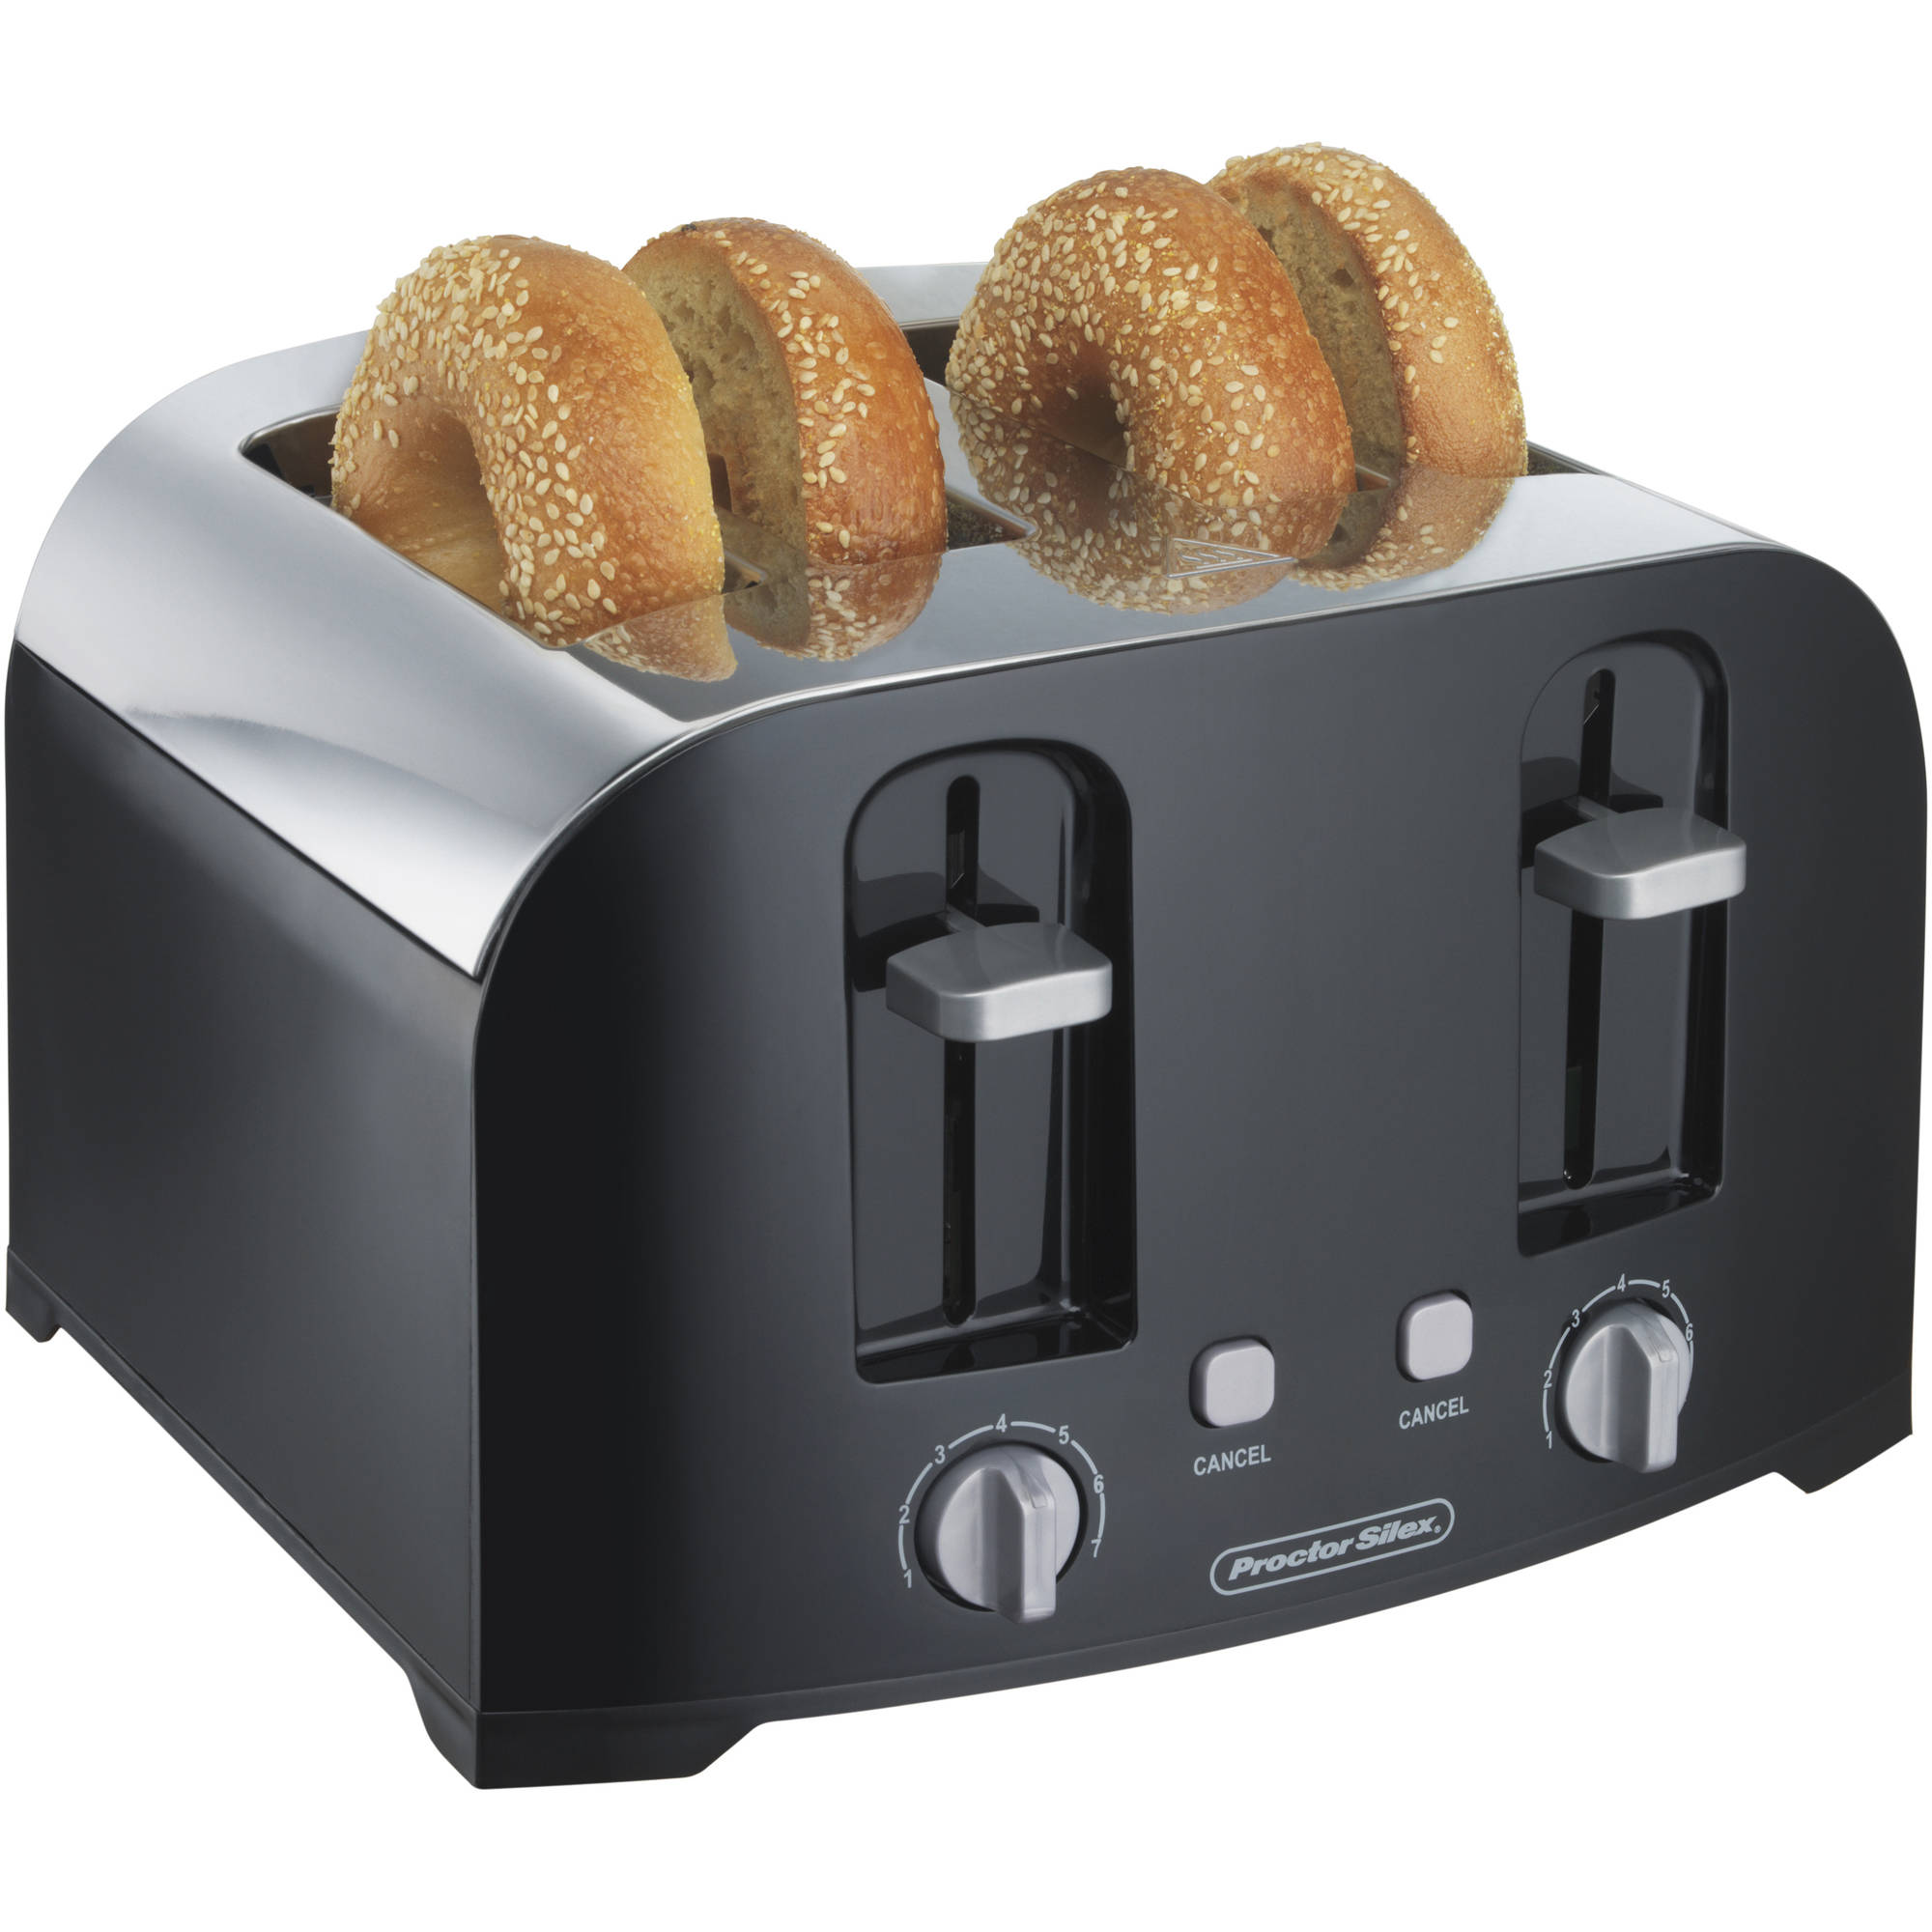 Proctor Silex 4 Slice Toaster With Auto Shutoff | Model# 24622